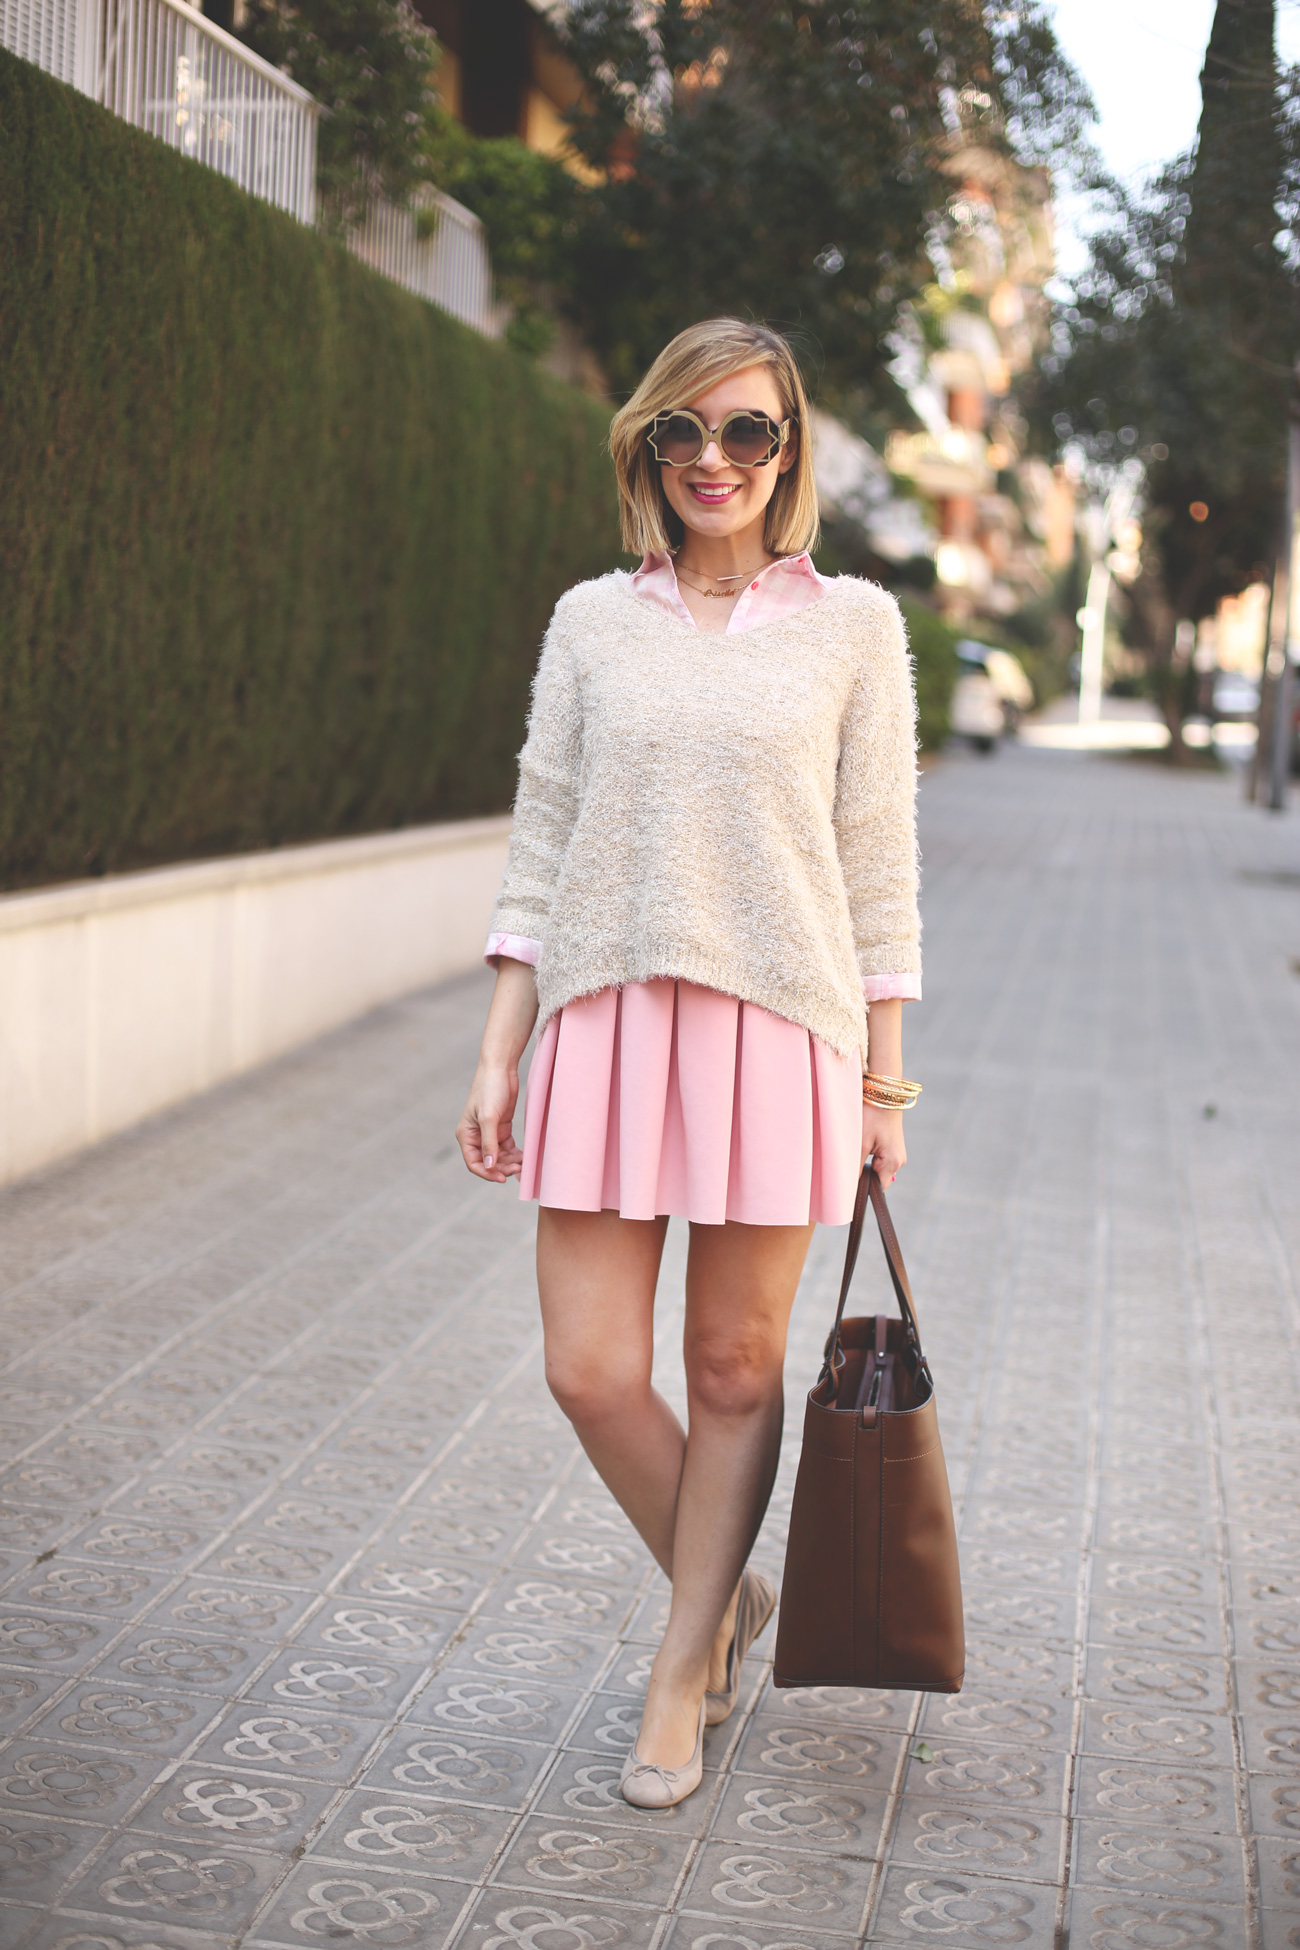 Baby pink, fashion blogger, blonde, girl, pink skirt, falda zara, look lady, pink shirt, camisa cuadros, zara kids, trend, fashion,